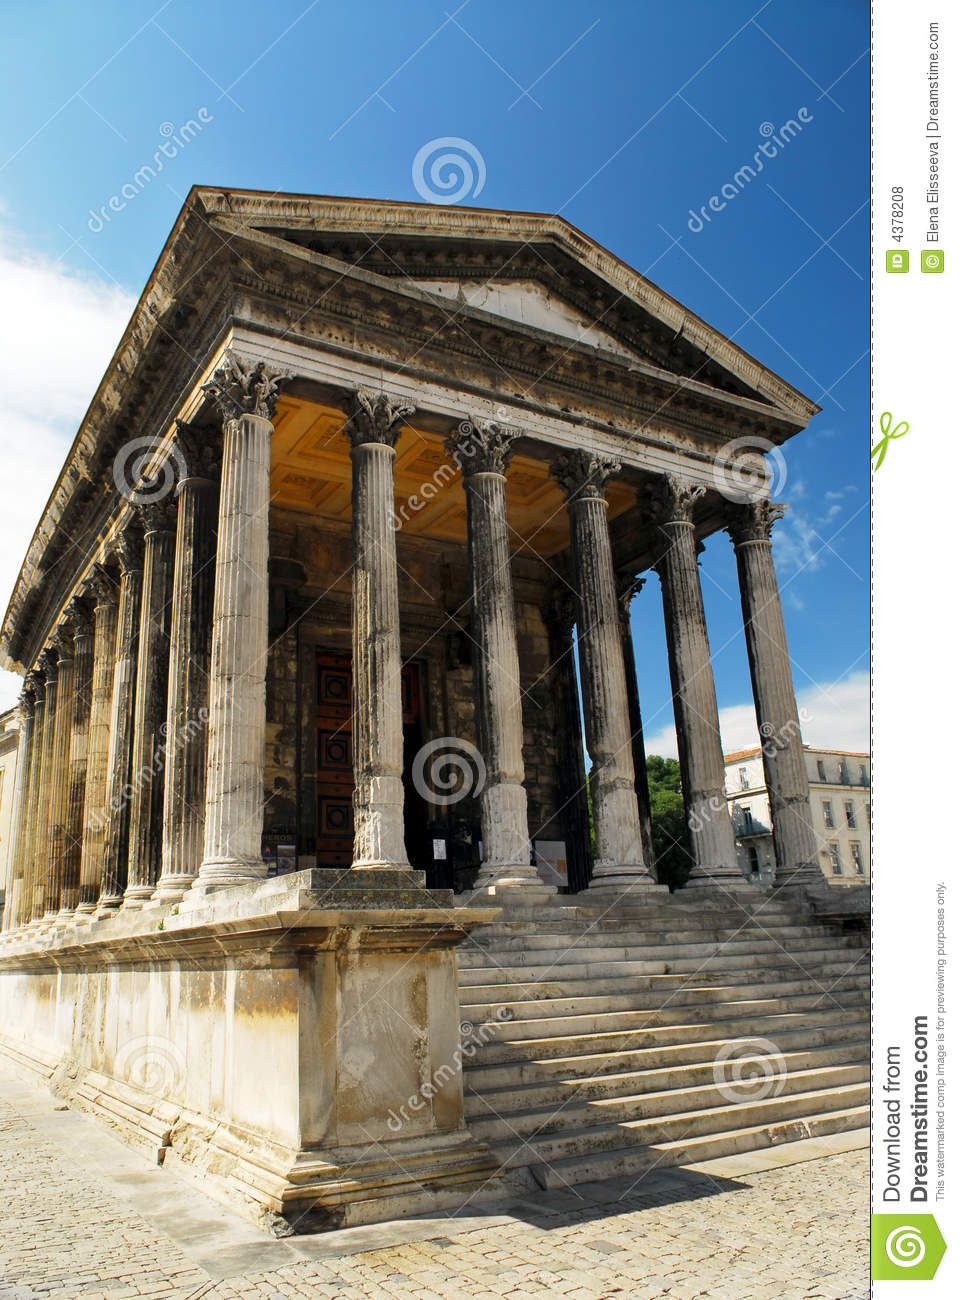 roman temple in nimes france royalty free stock photos image 4378208. Black Bedroom Furniture Sets. Home Design Ideas